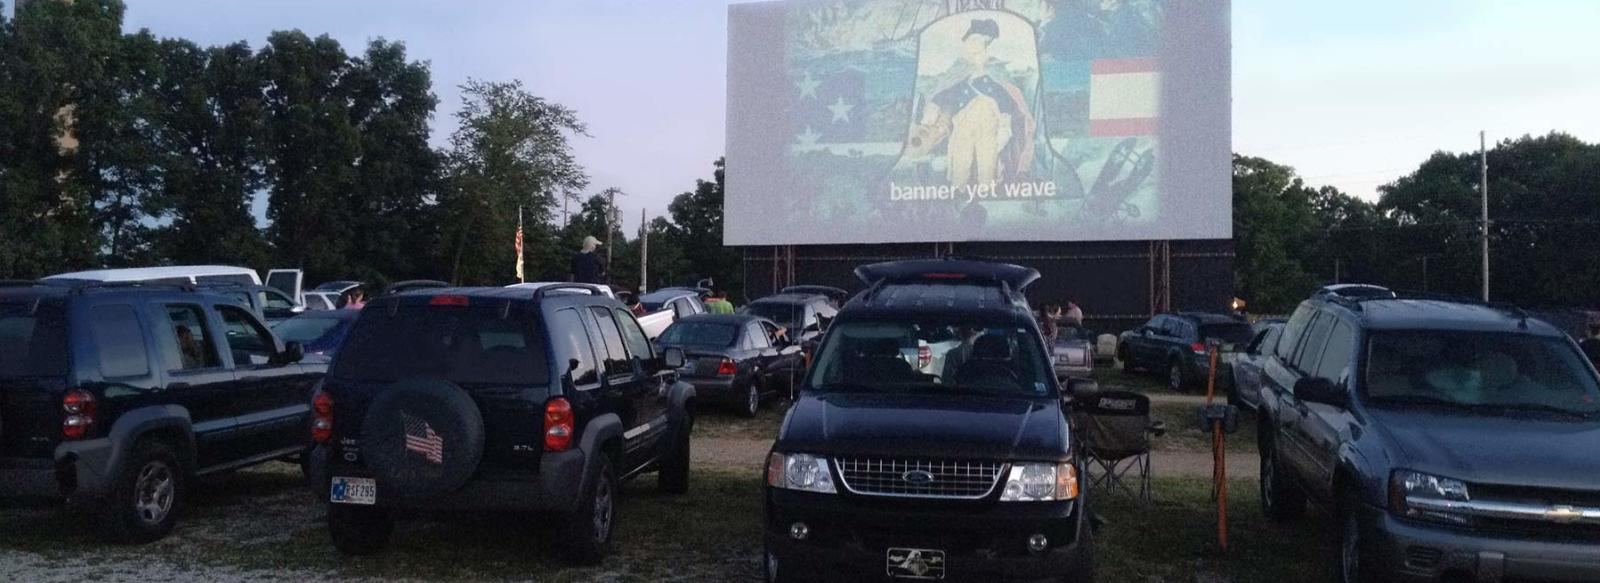 Northwest-Indiana-Drive-In-Theater-Movies